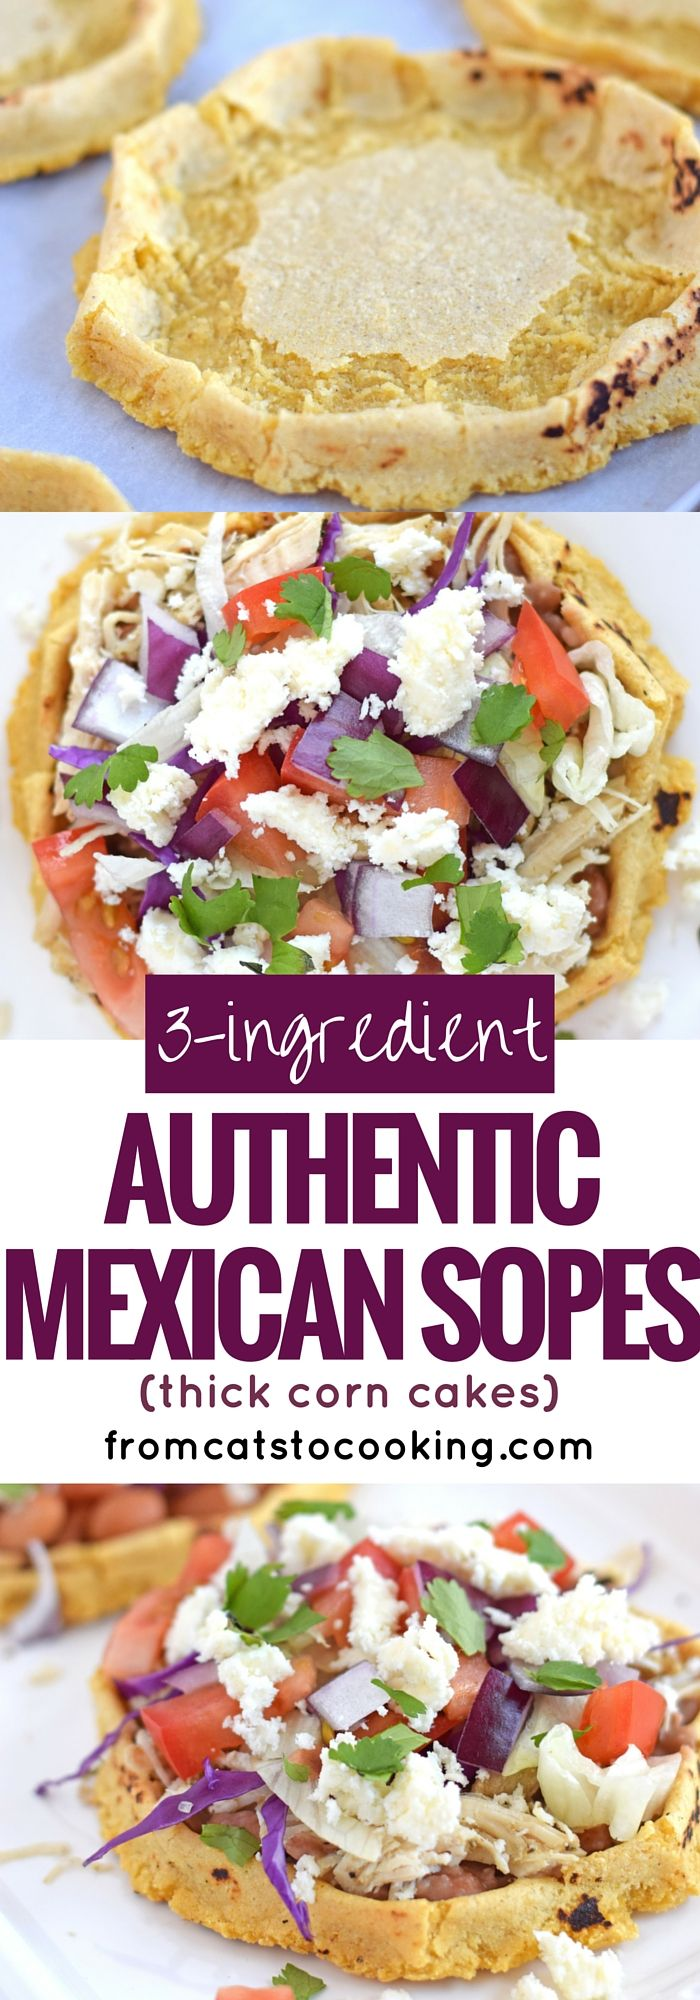 3-Ingredient Authentic Mexican Sopes are a thick corn cake that you can top with any ingredients your little tummy desires. I like to think of them as a thick corn tortilla boat because they're made exactly like a corn tortilla except the edges are pinched up to create a little well in the middle. They're gluten free, vegetarian, vegan and dairy free. They also make a great appetizer or have a couple for dinner. // isabeleats.com